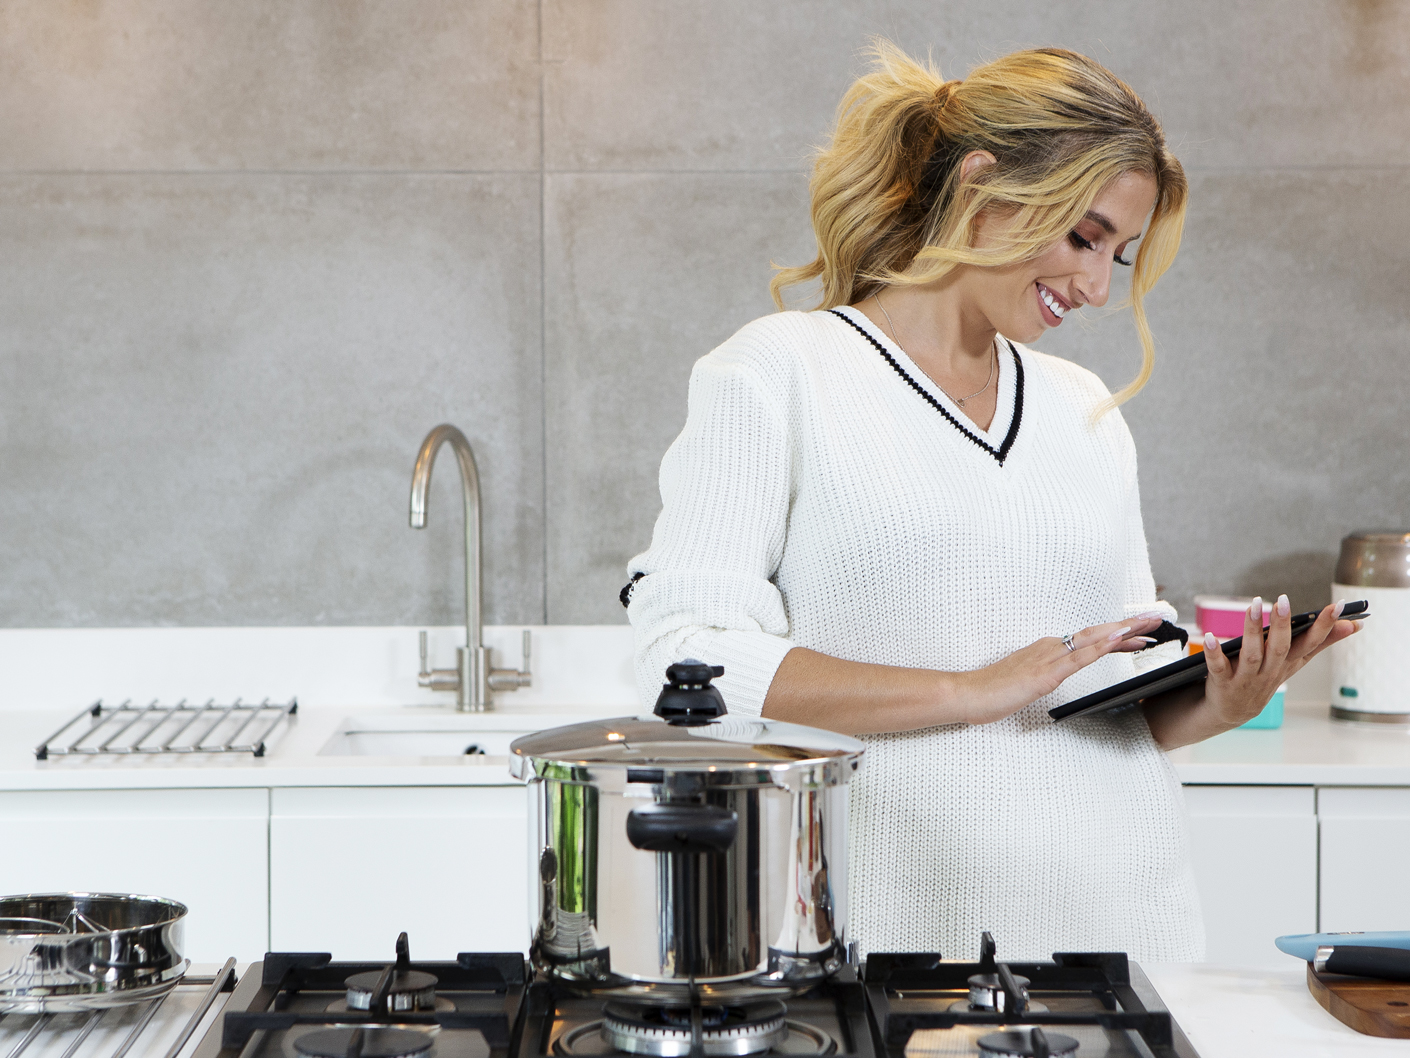 photography-for-stacey-solomon-and-prestige-cookware-shot-in-london